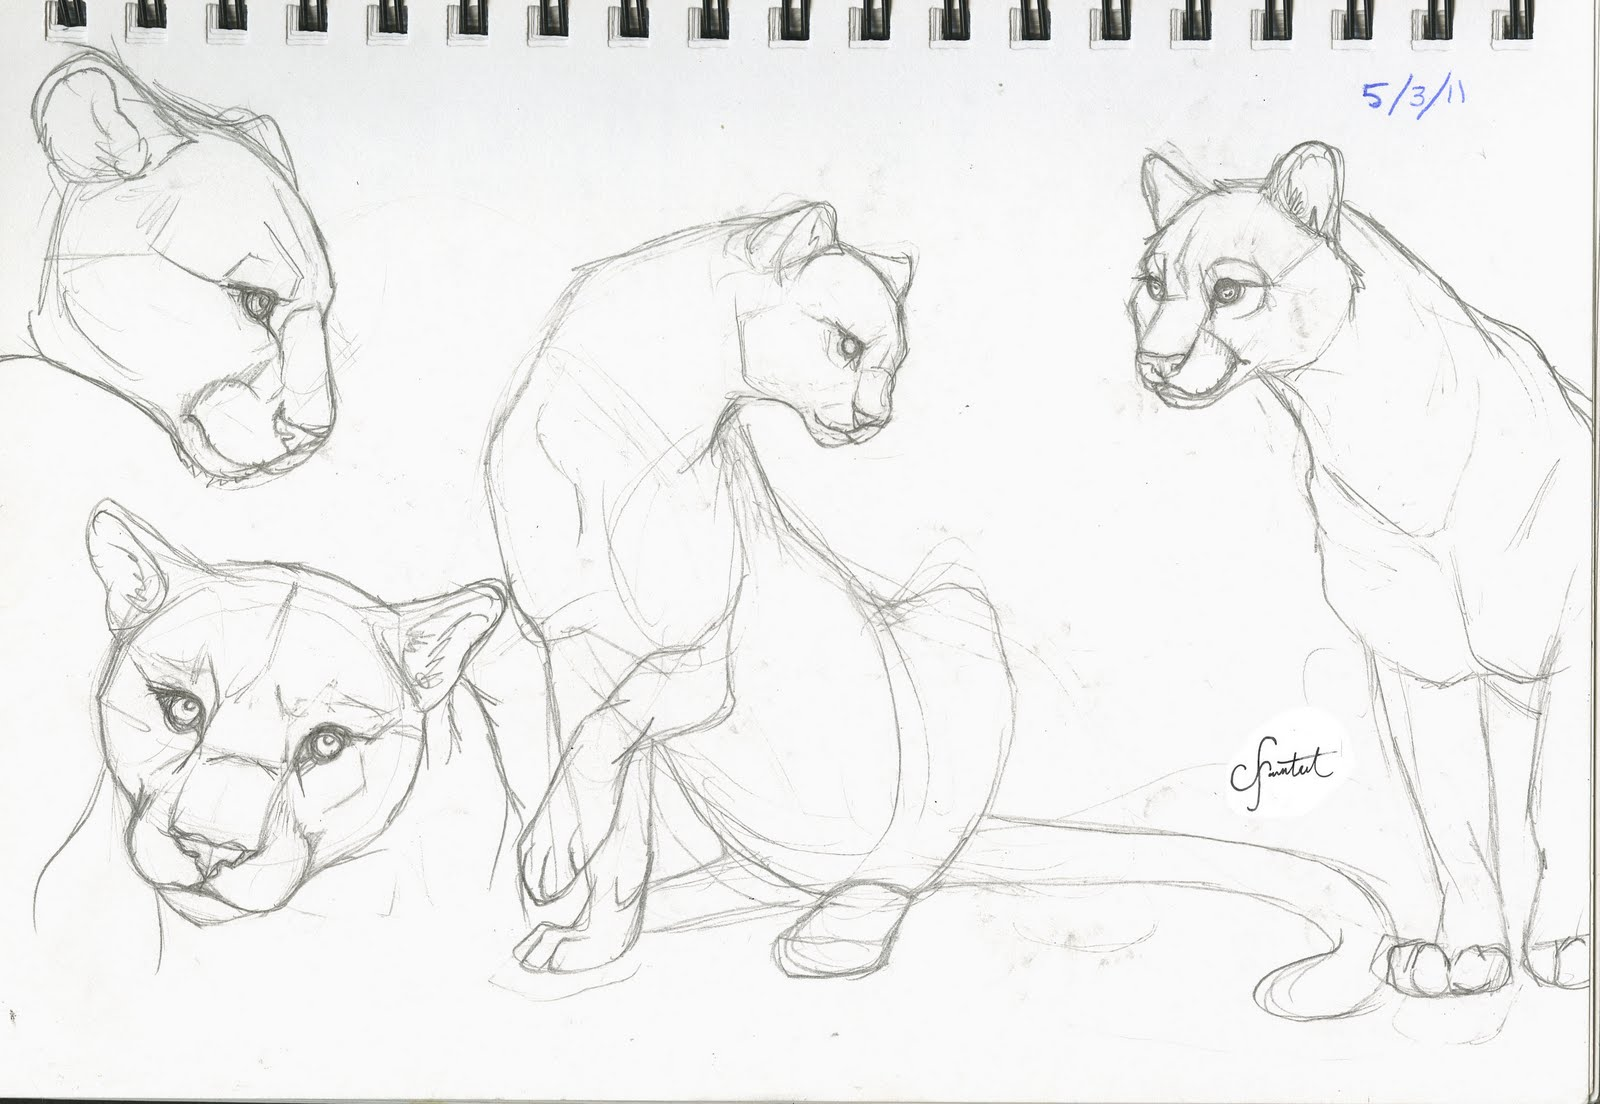 coloring pages mountain lion - photo #11